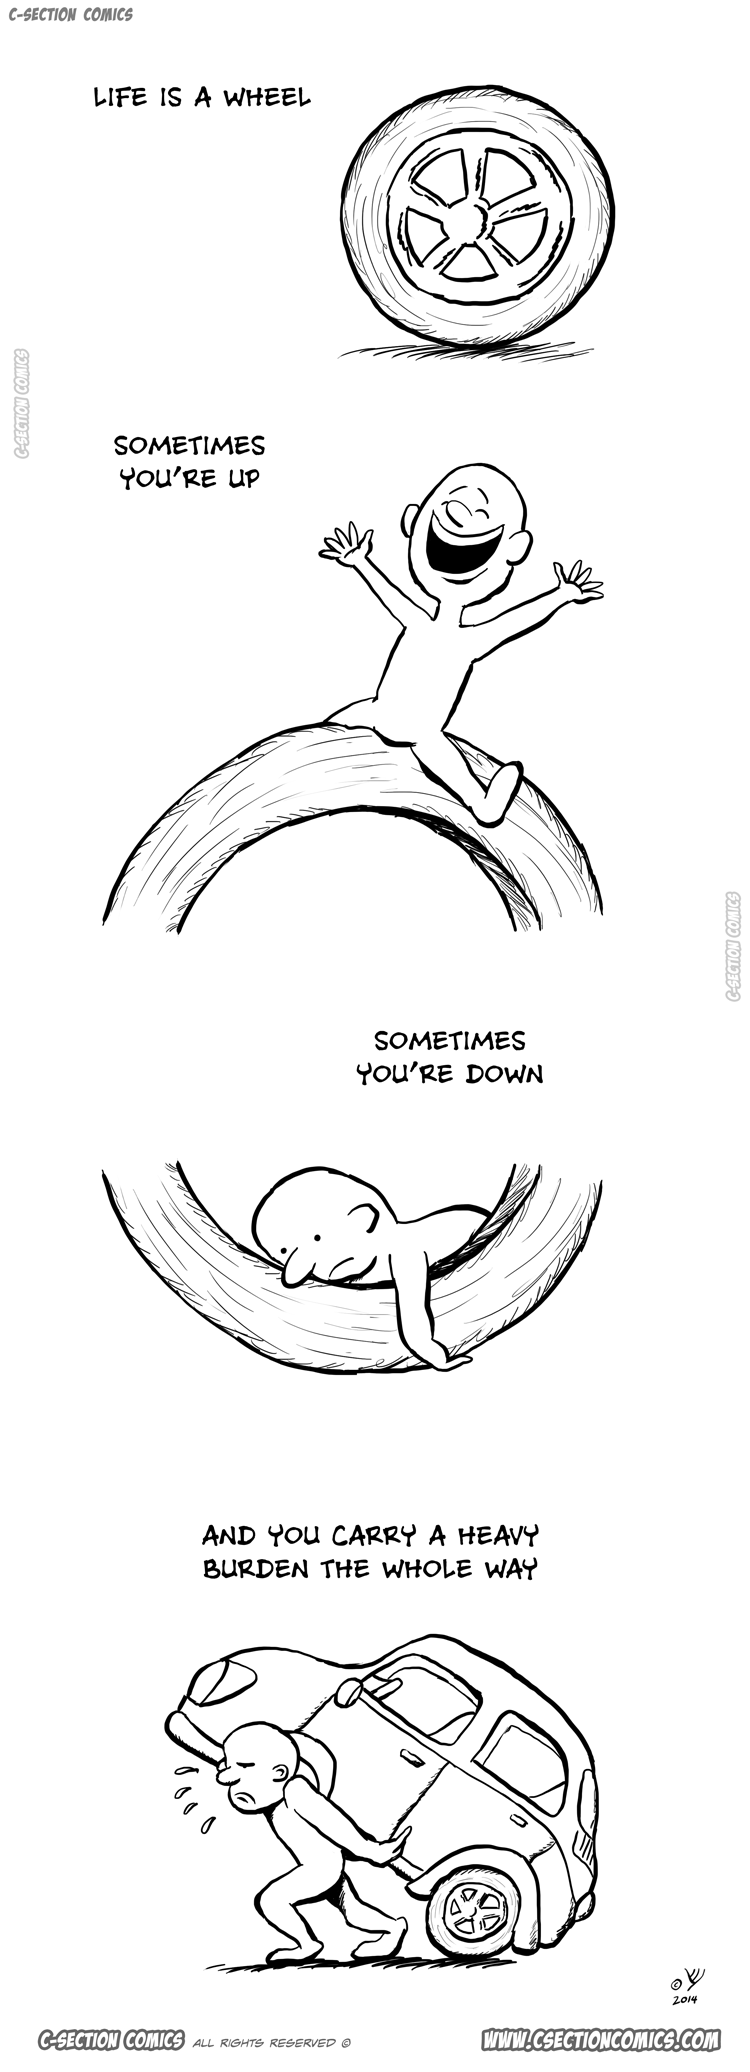 Life Is a Wheel - a motivation cartoon by C-Section Comics